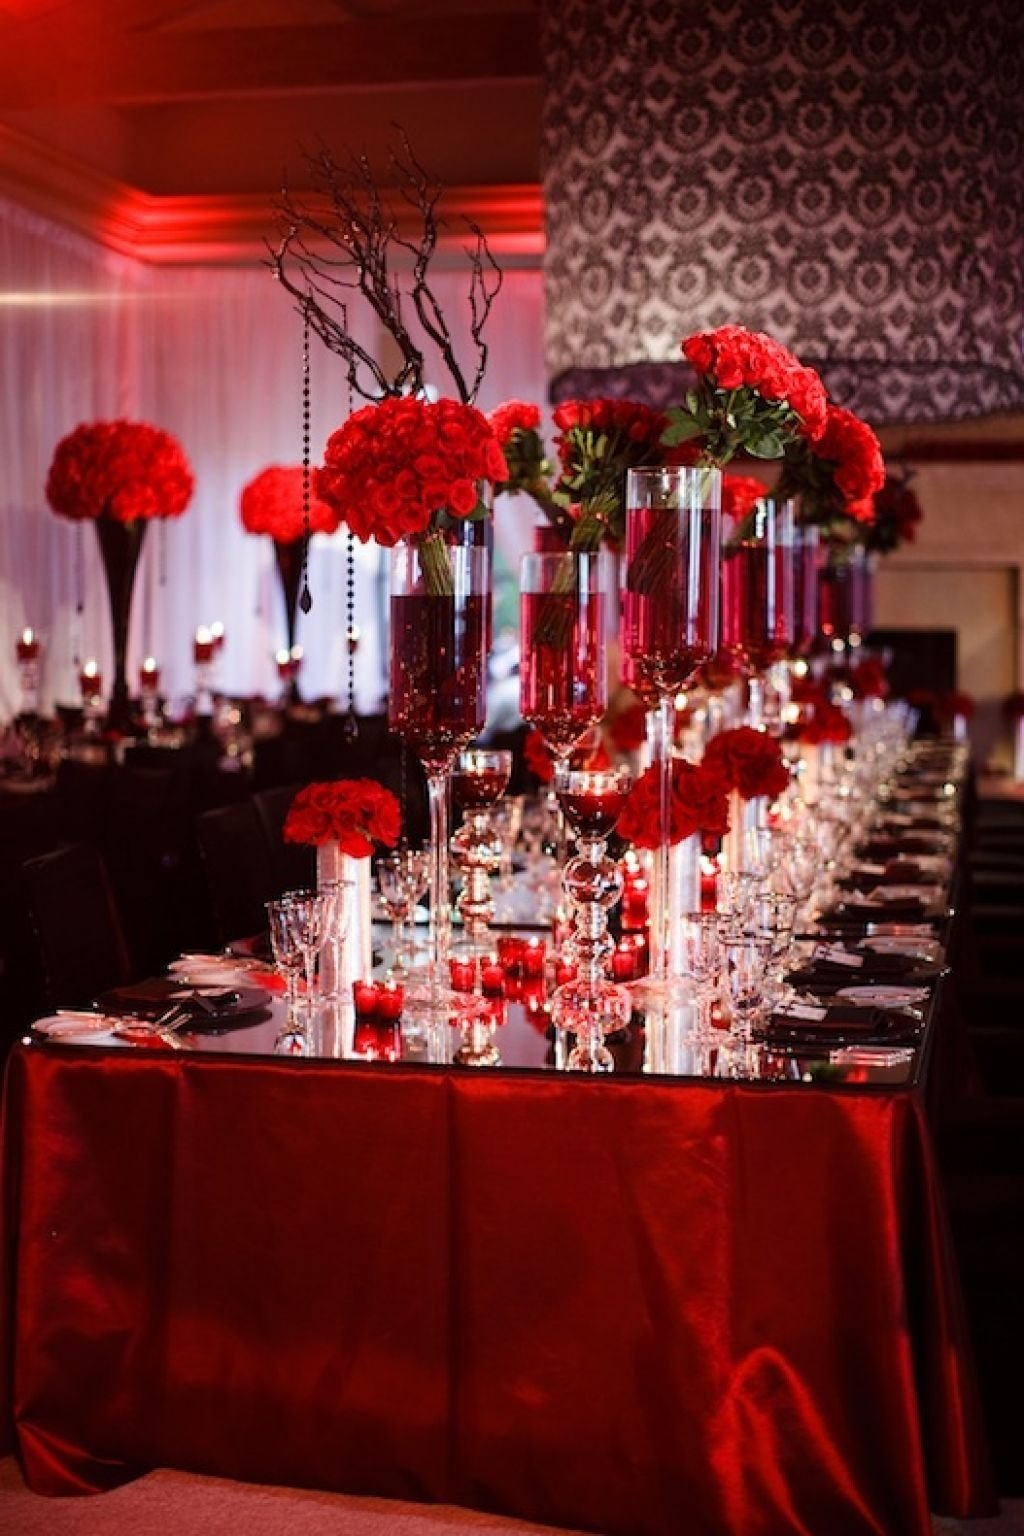 red white and black wedding table decorating ideas | wedding in